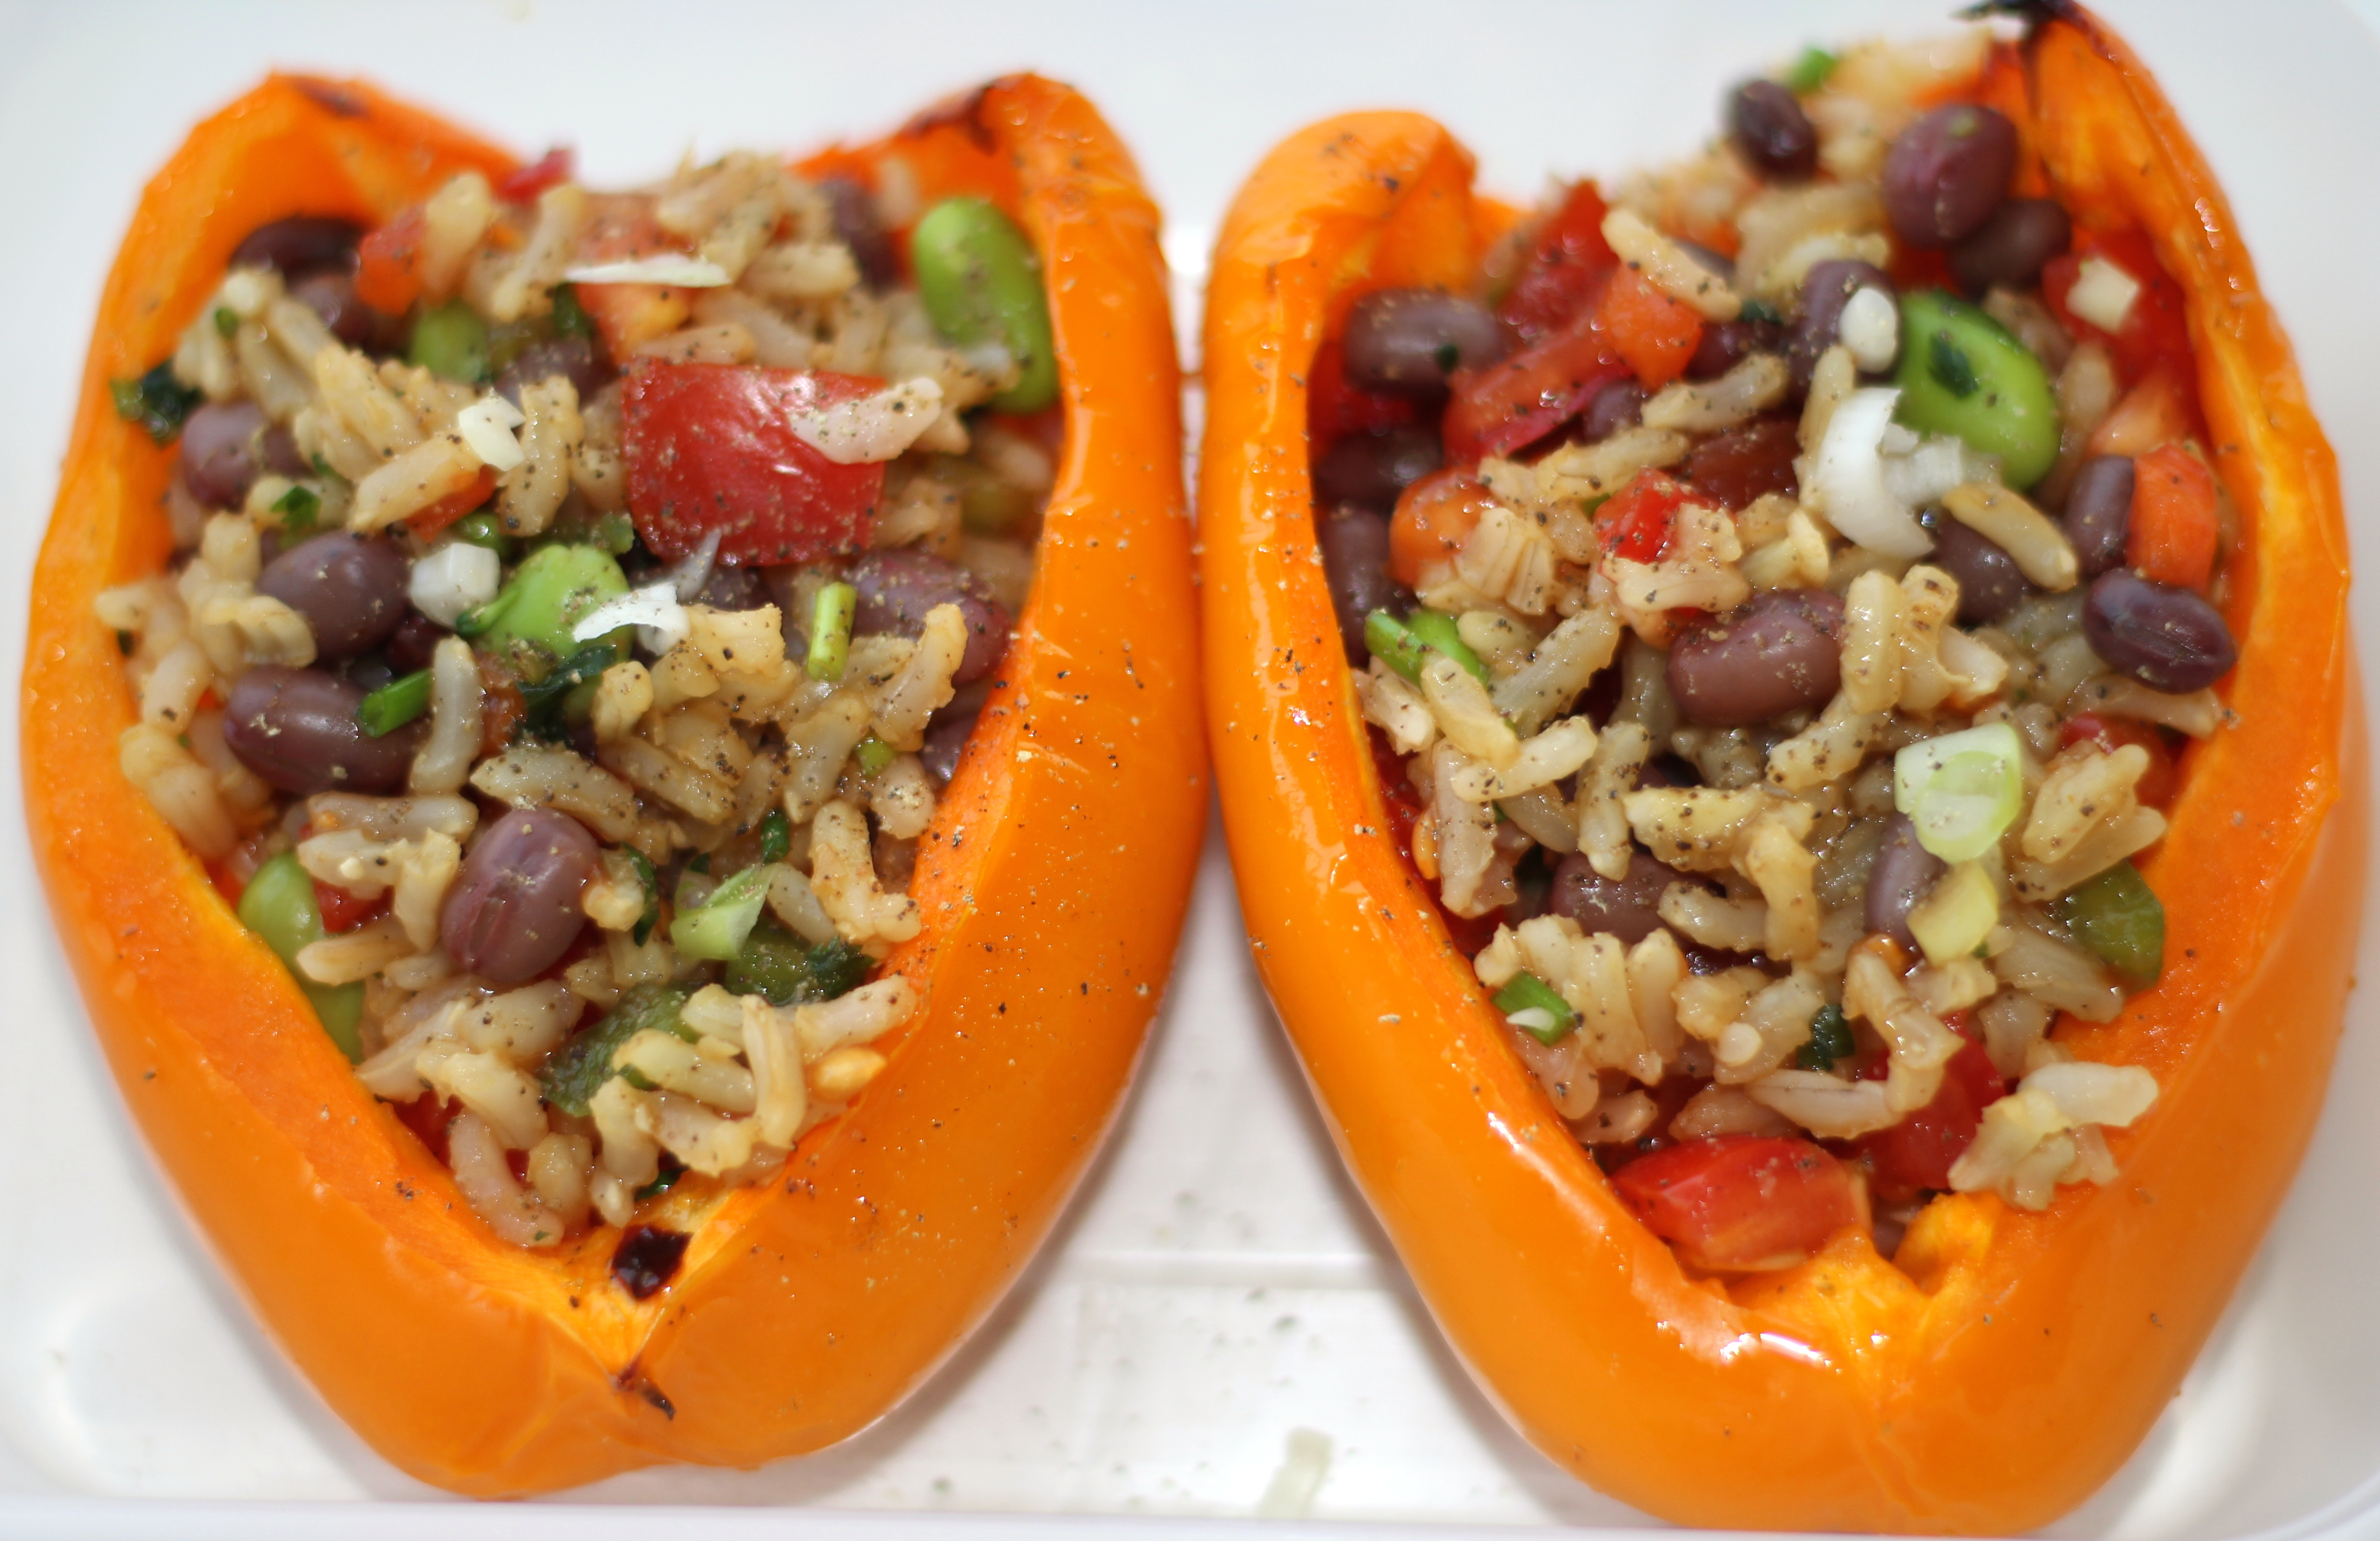 ROASTED PEPPERS STUFFED WITH RICE SALAD